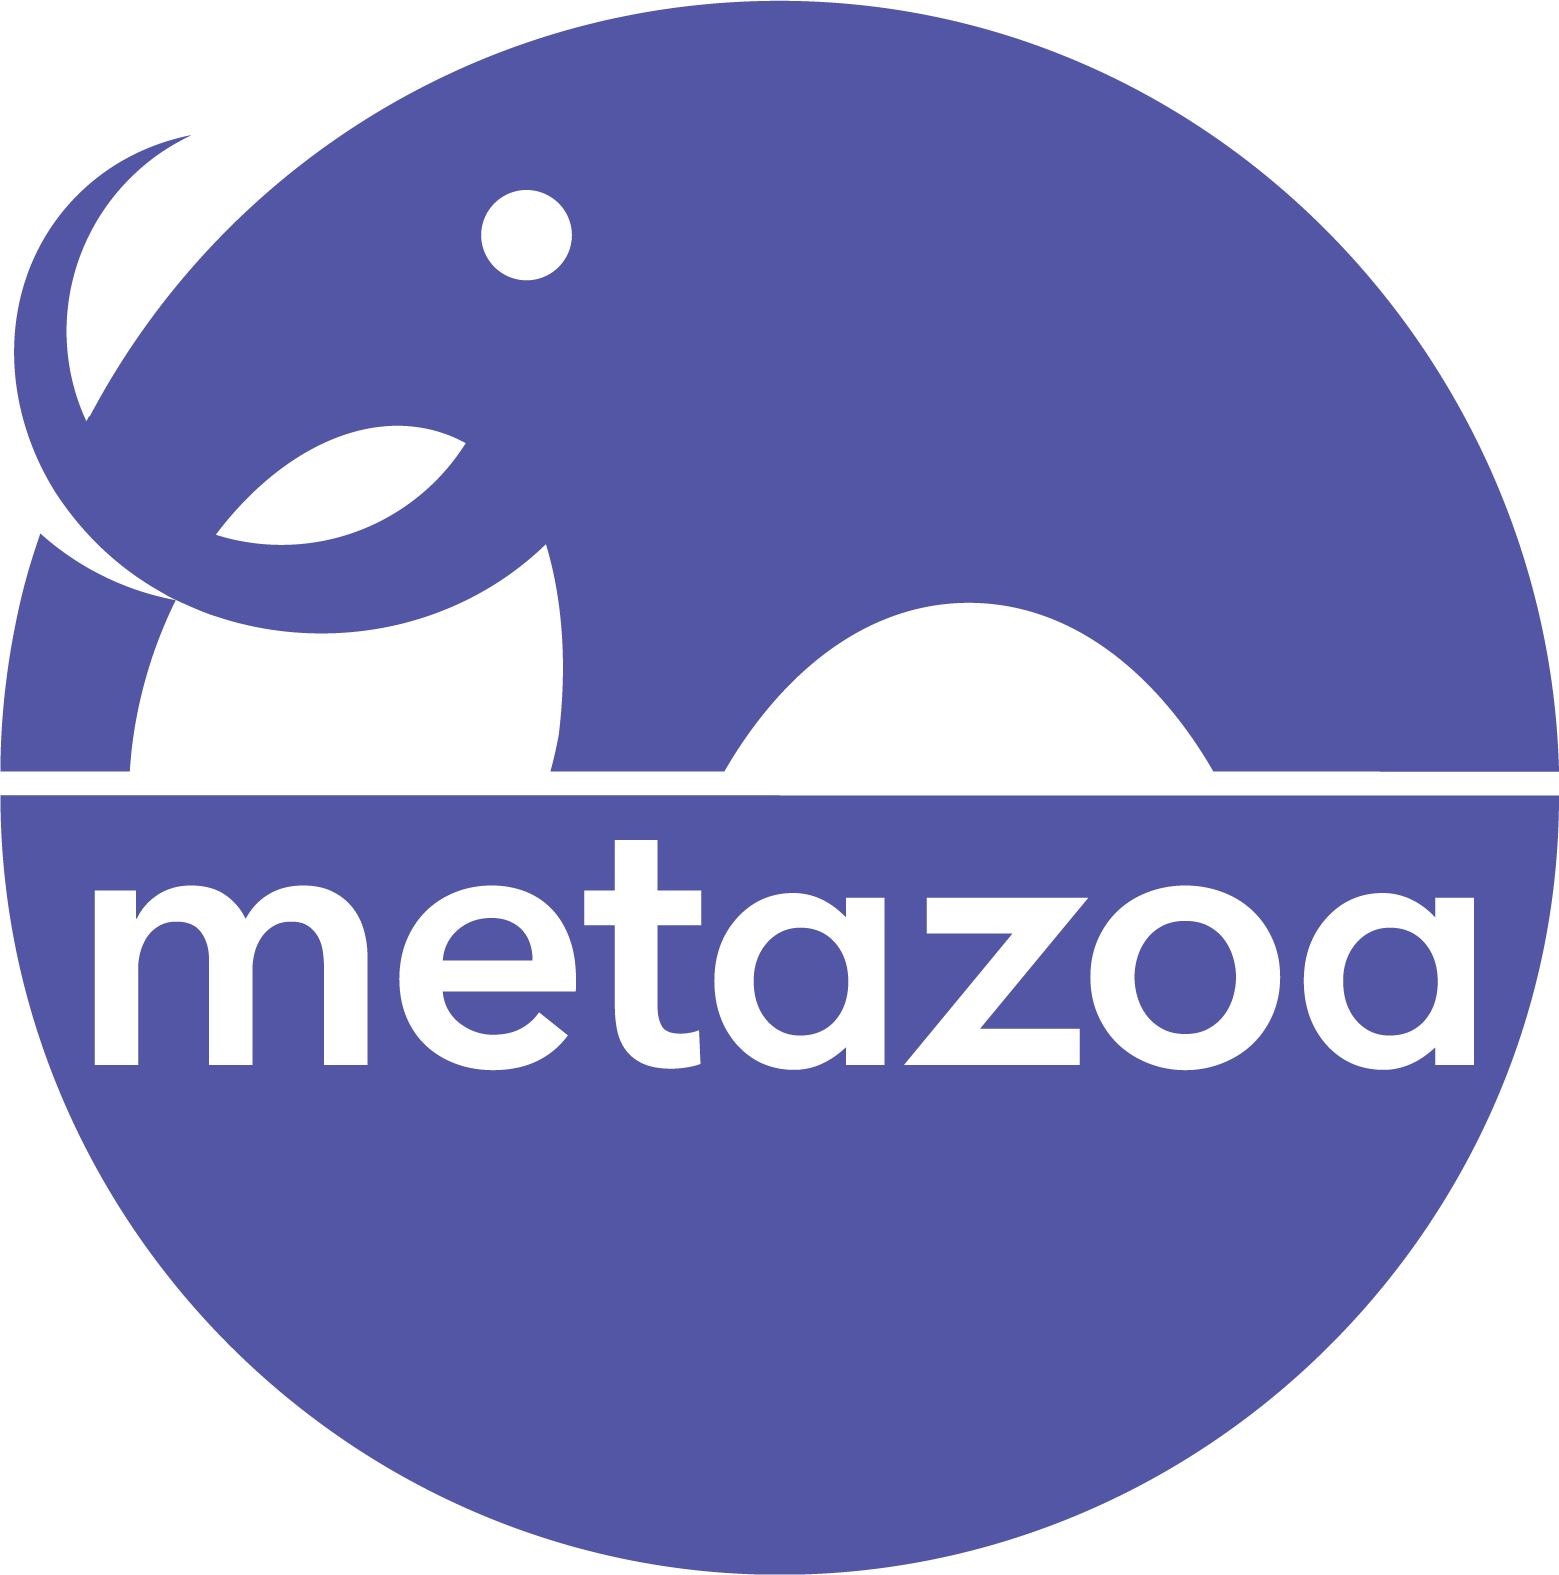 Metazoa Help Center home page